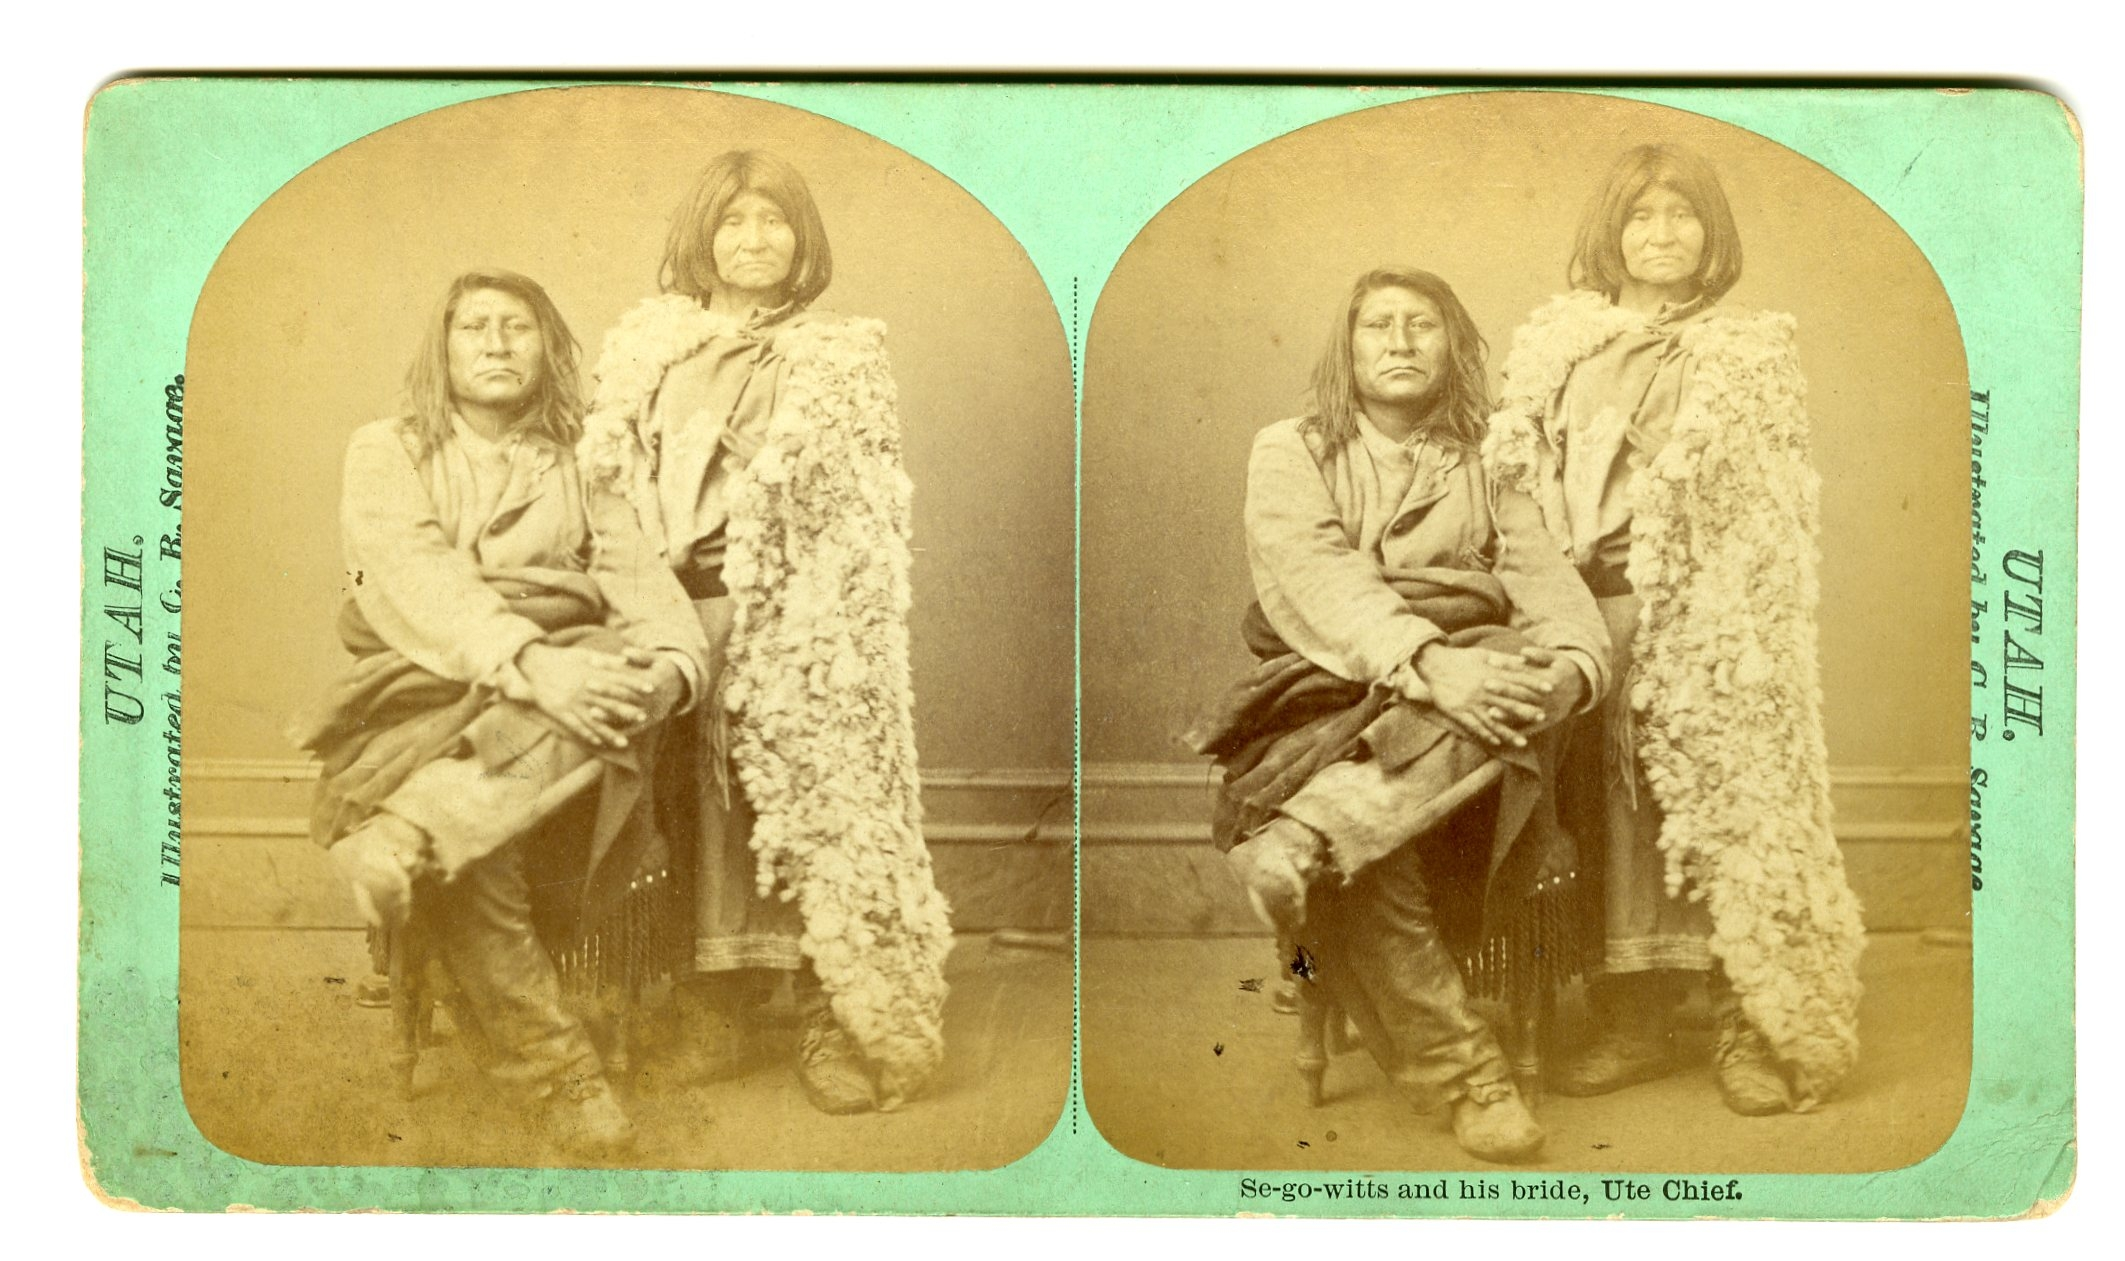 http://www.american-tribes.com/messageboards/dietmar/segowitts2.jpg